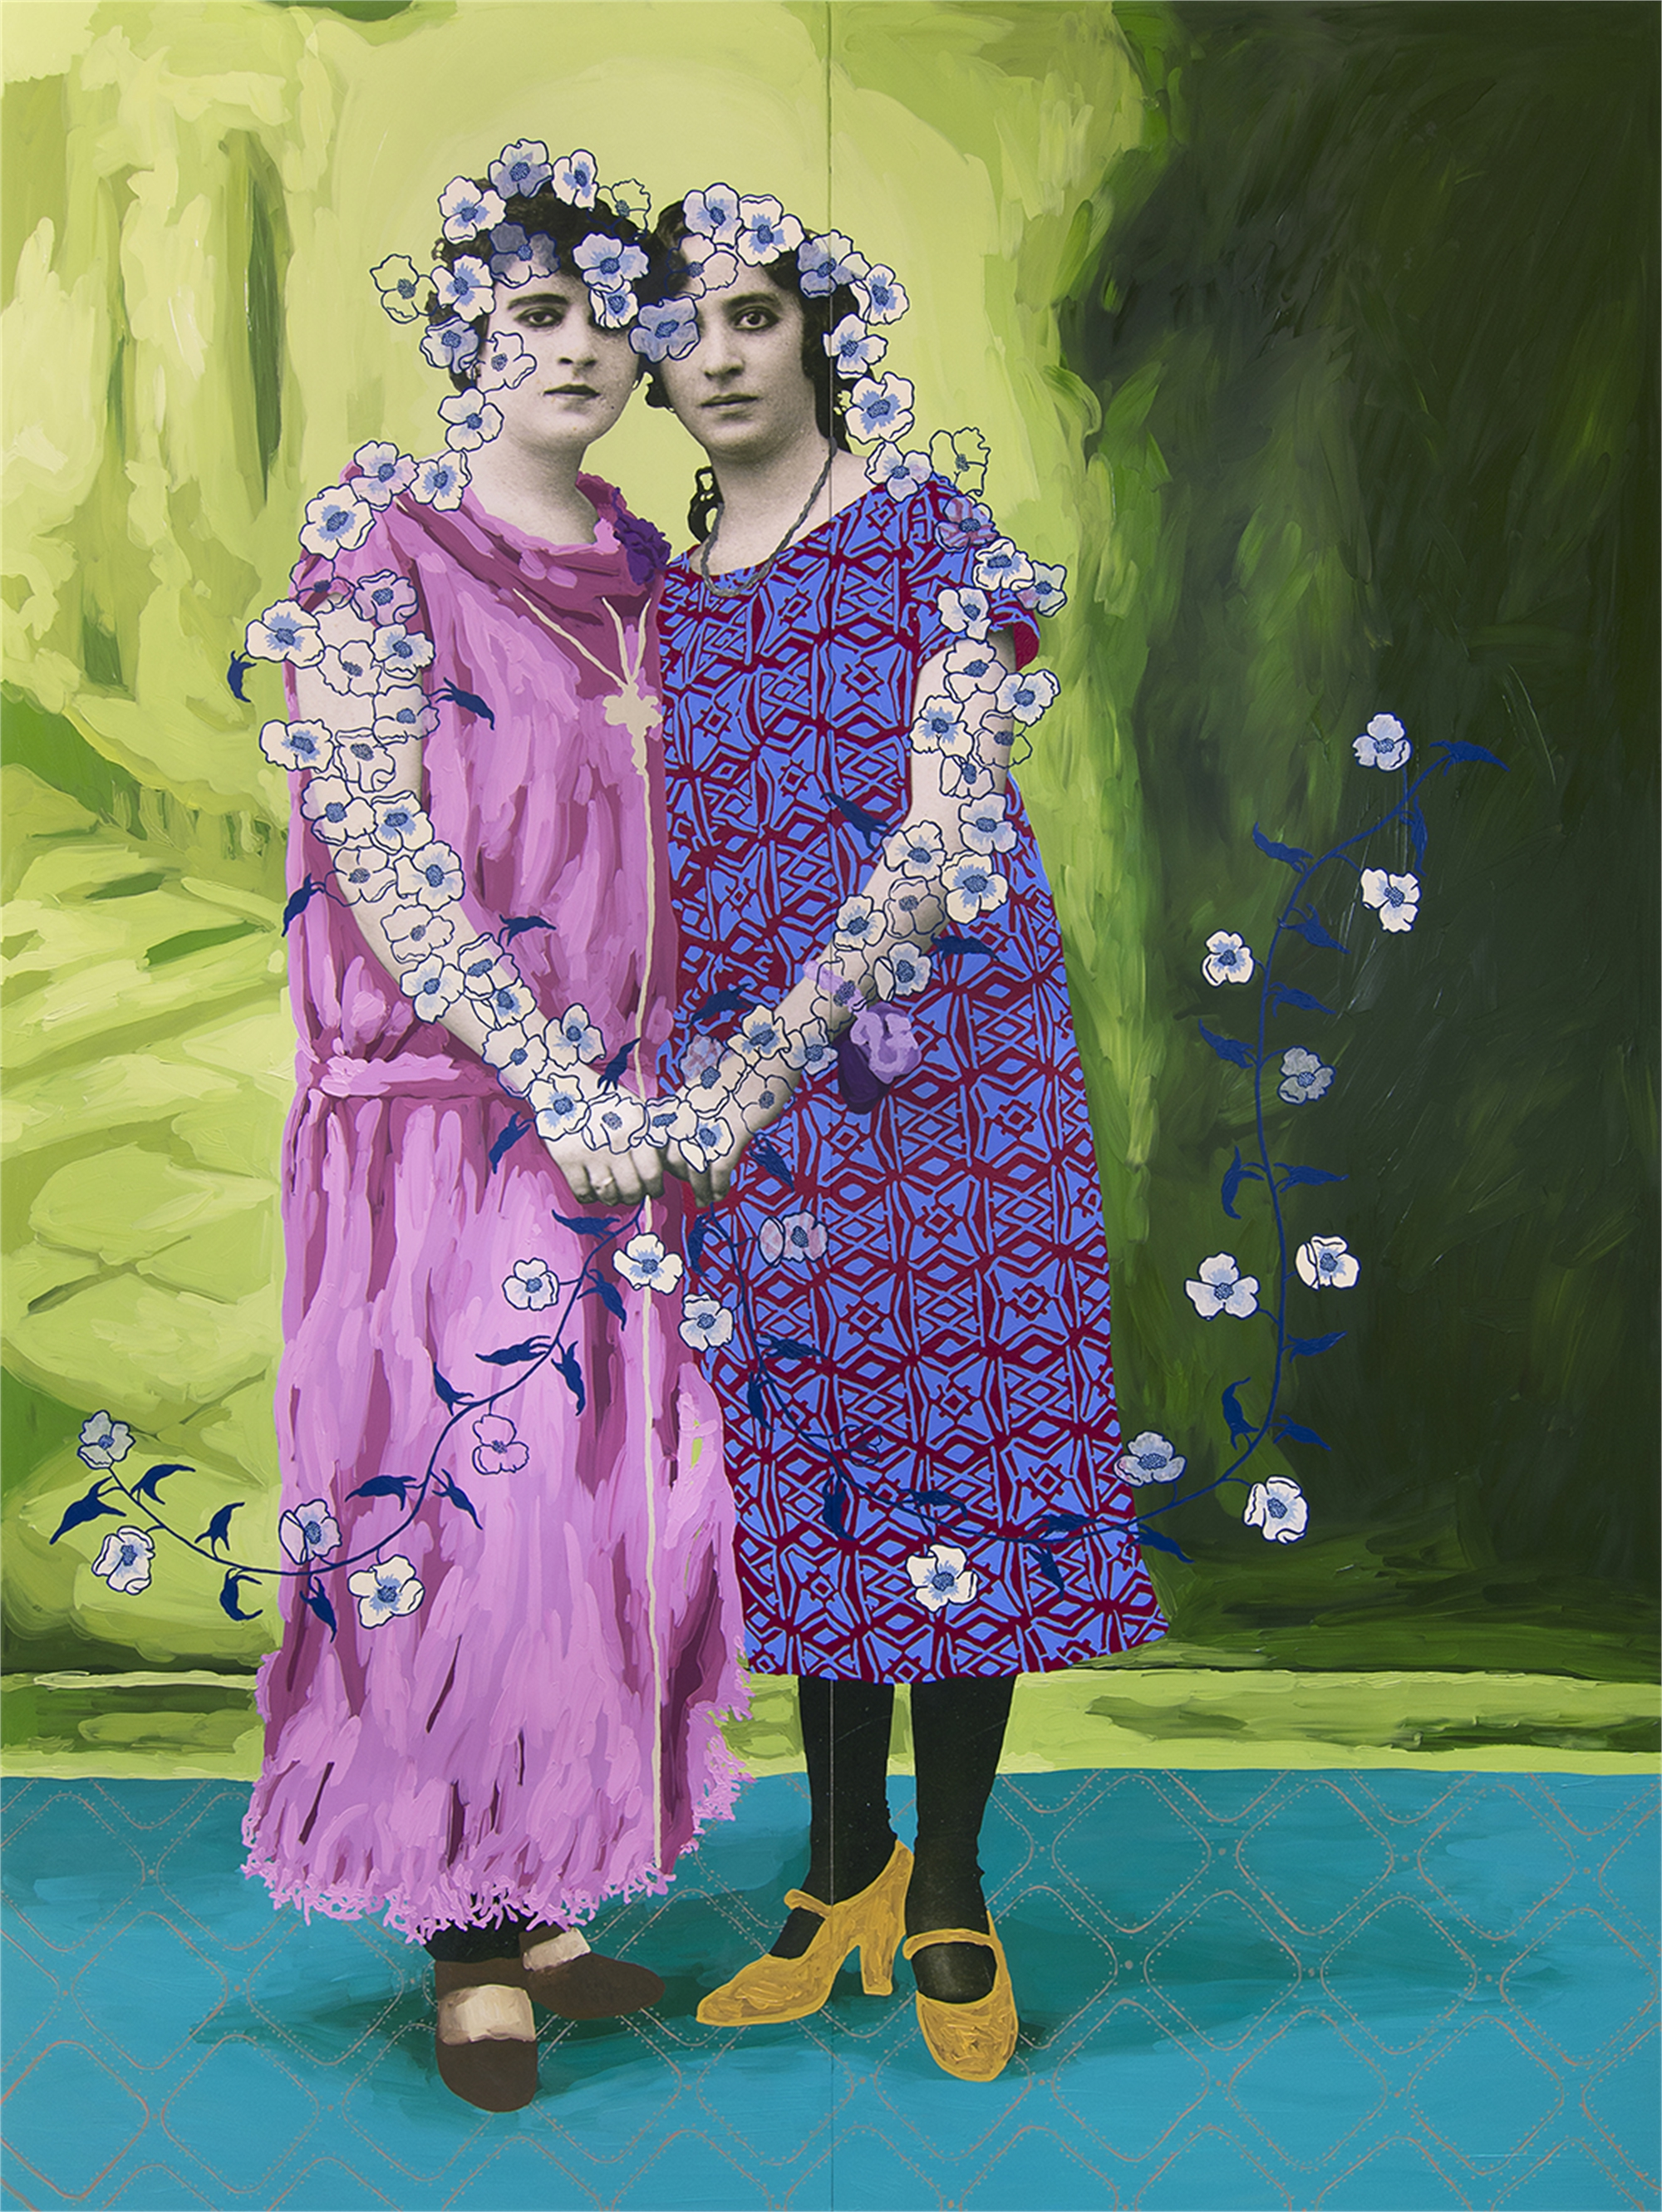 Untitled (Two Women Holding Hands with Cream and Blue Flowers) by Daisy Patton